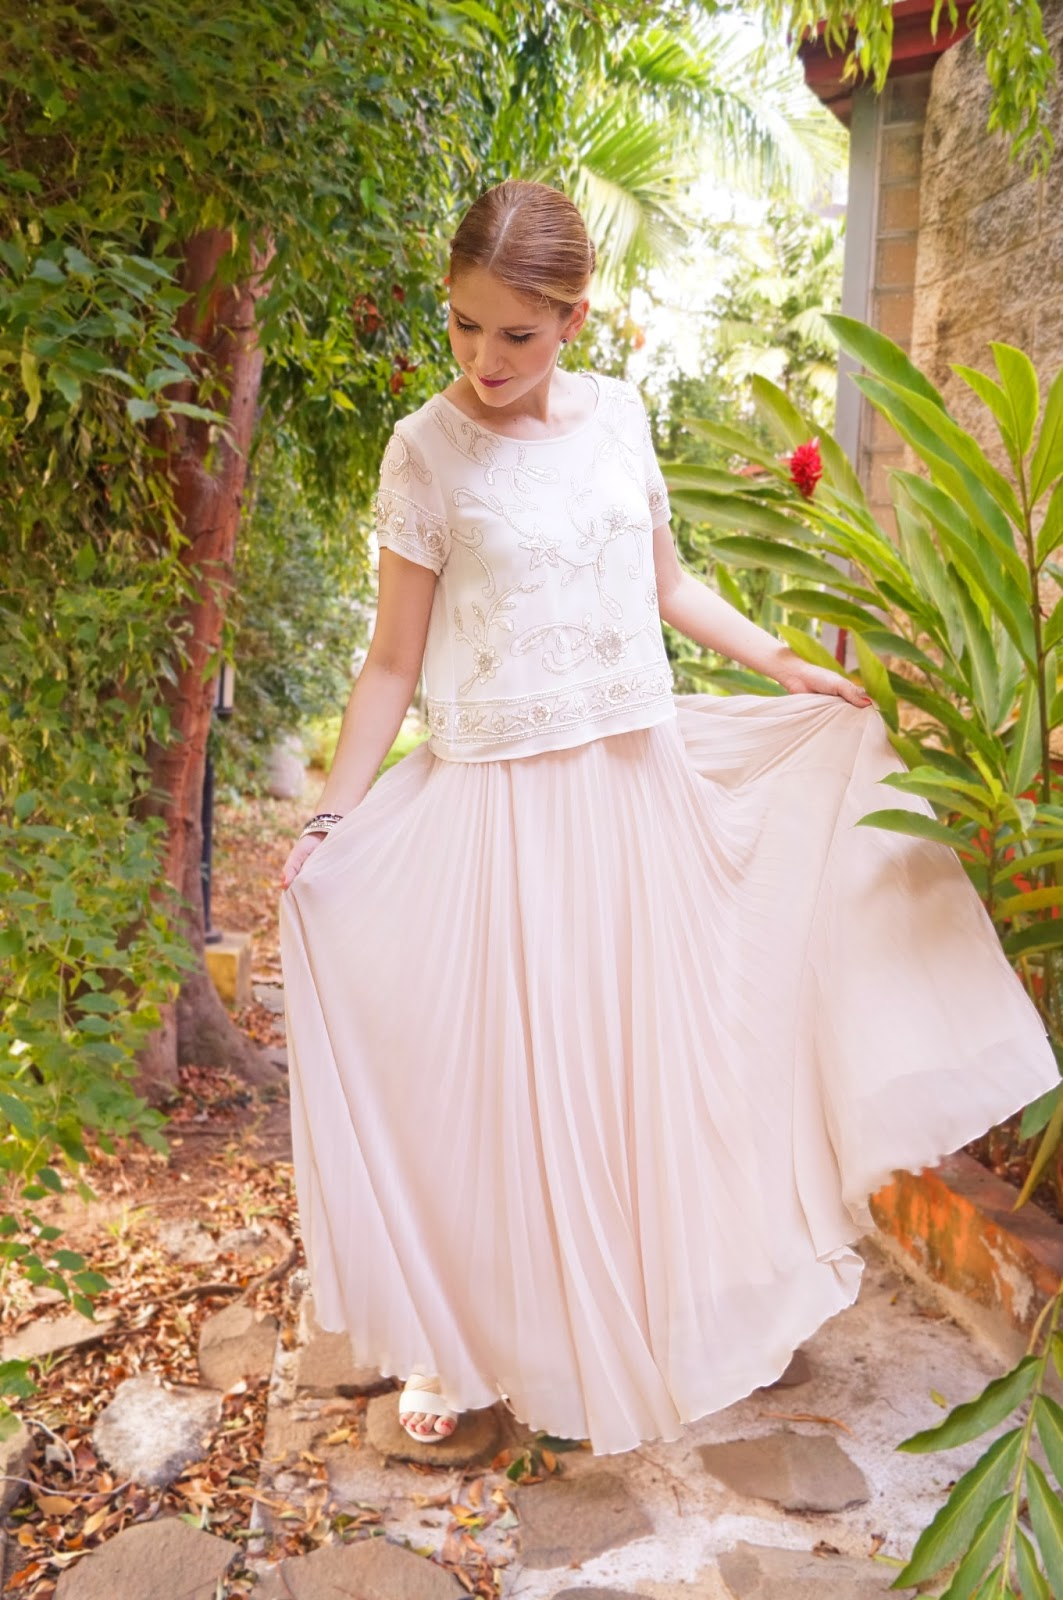 Beige Maxi Skirt Outfit